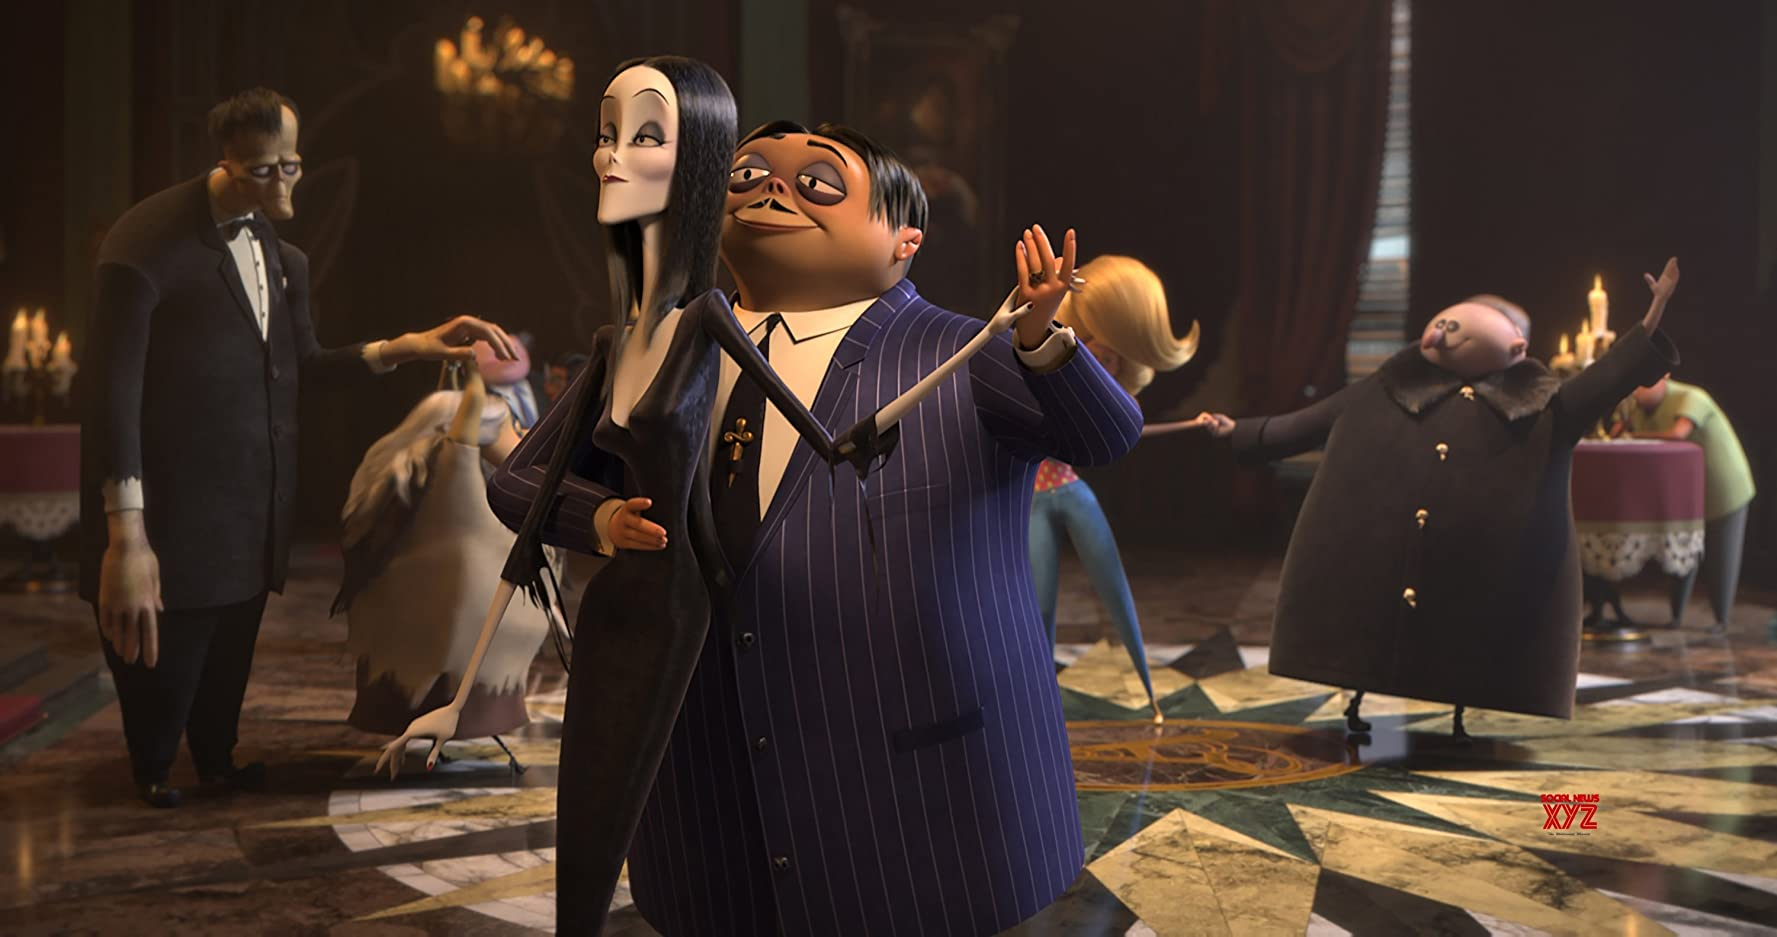 Charlize Theron and Oscar Isaac in The Addams Family (2019)